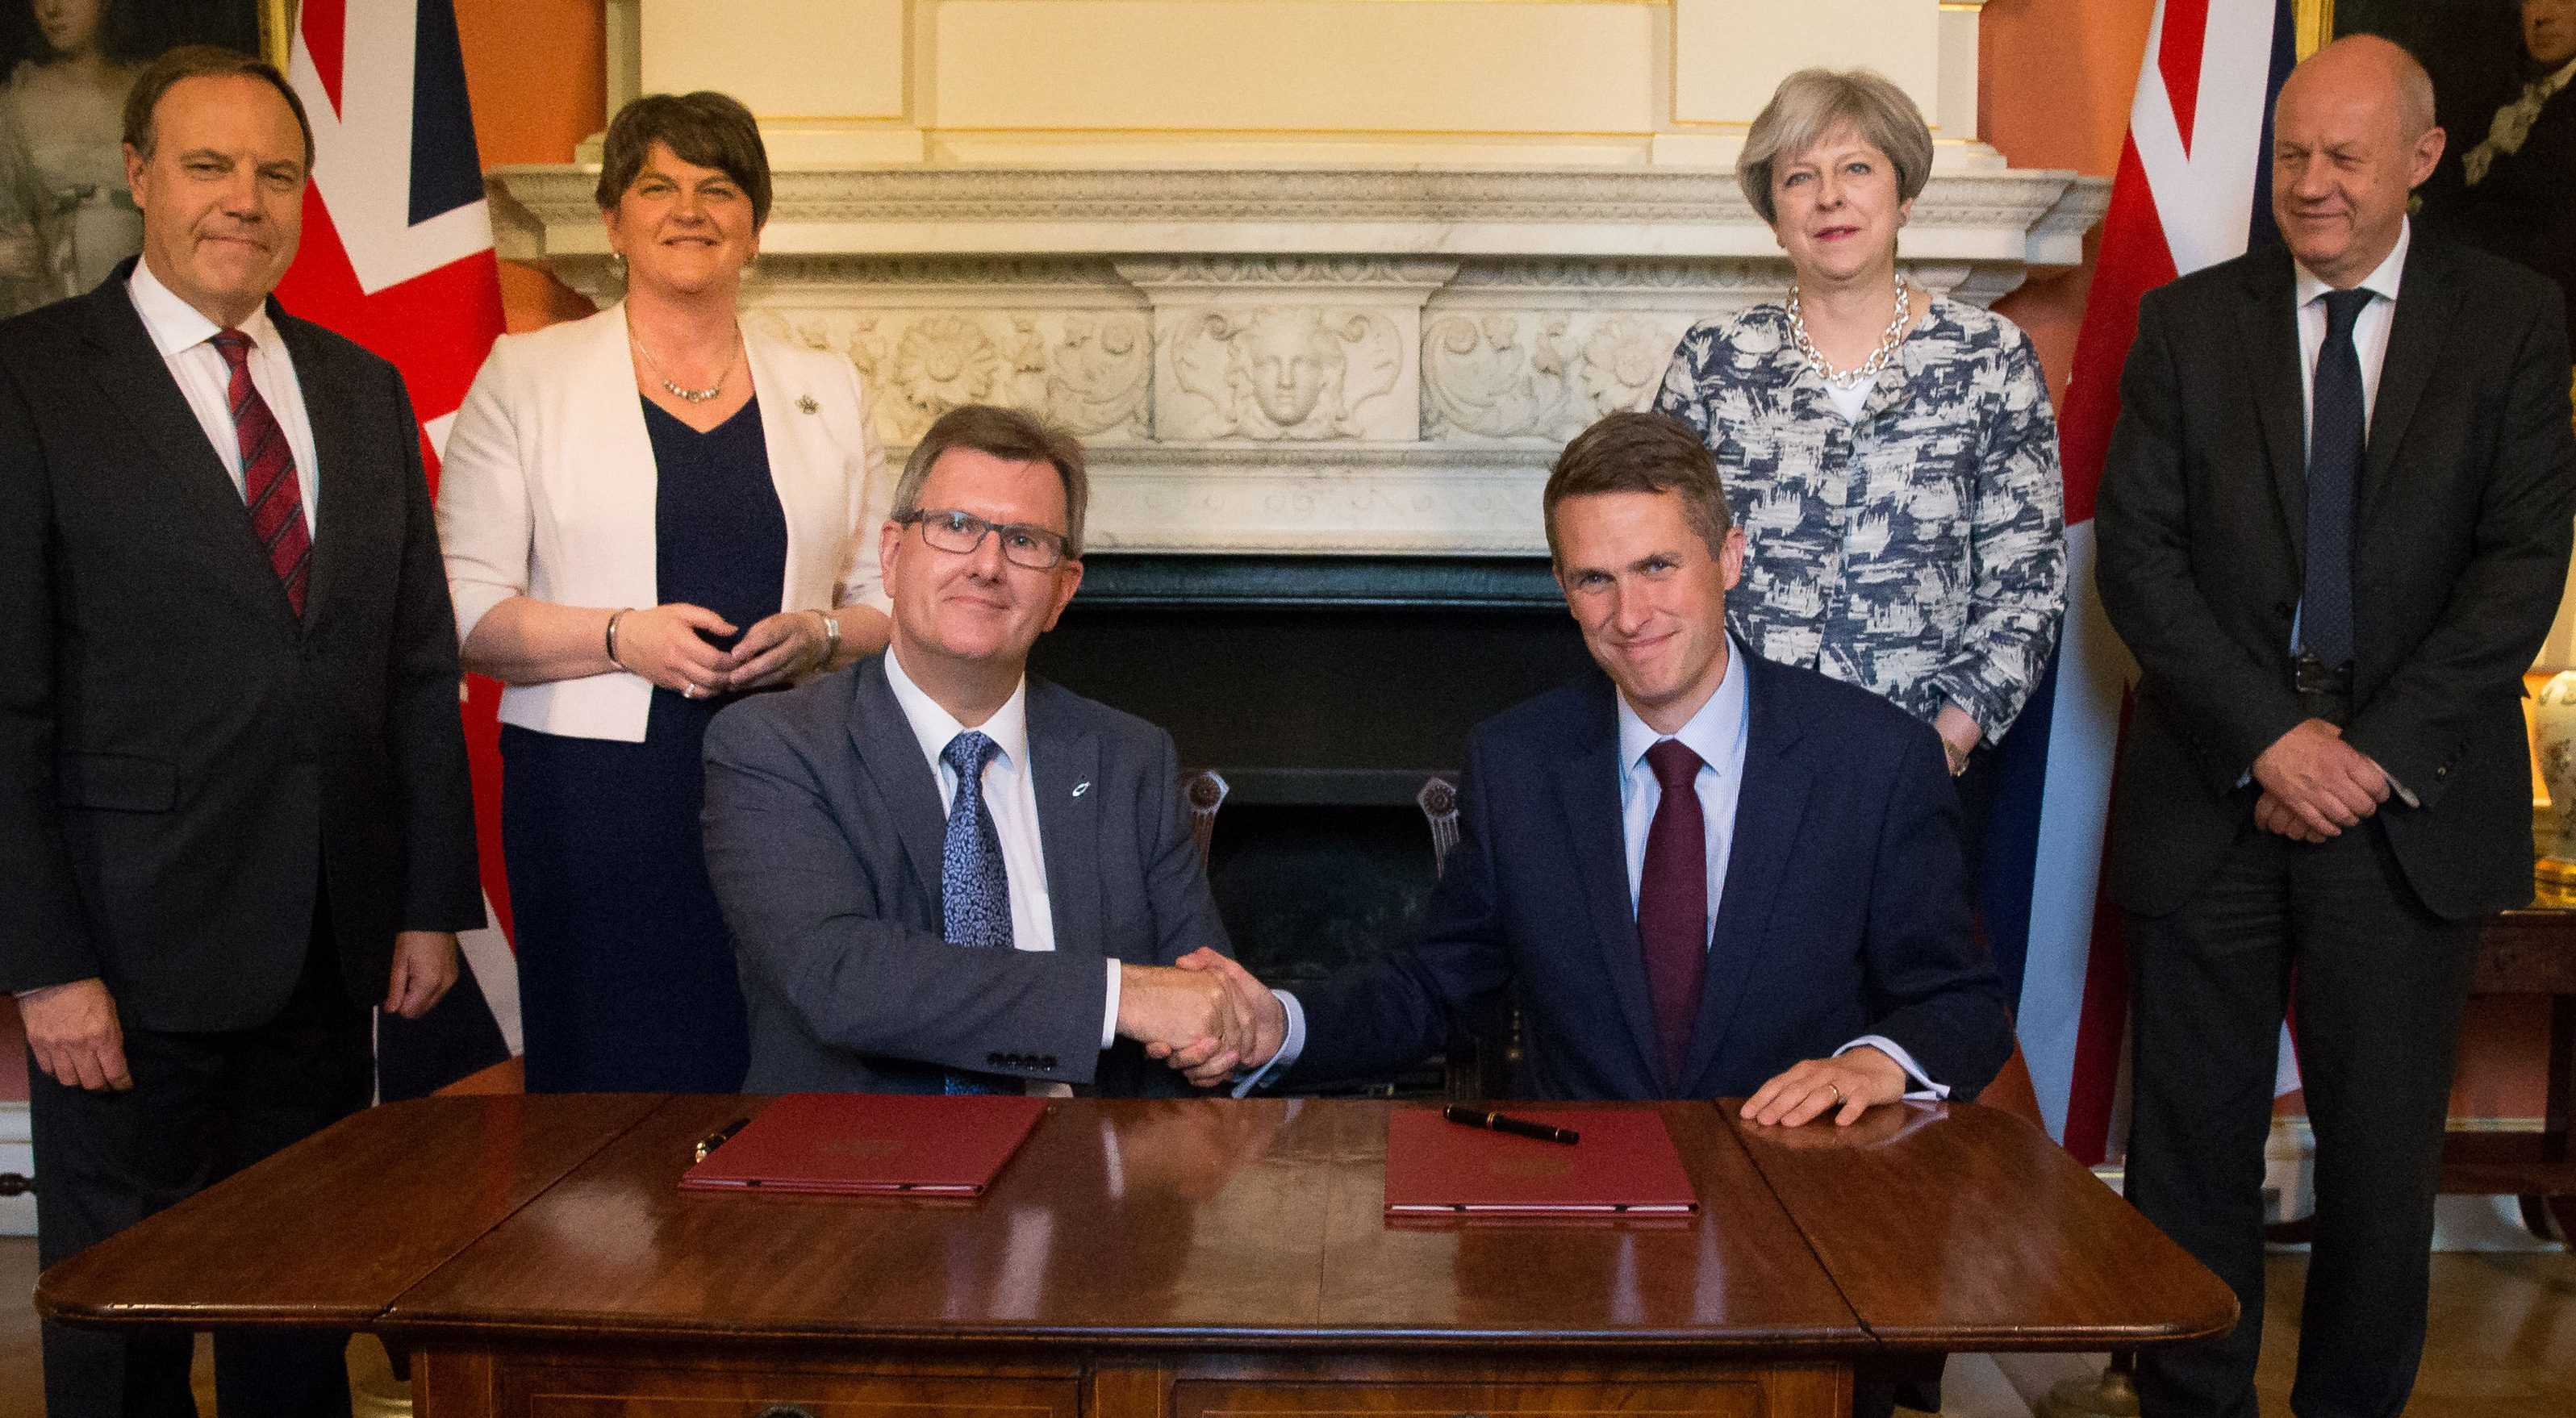 The DUP agreed a deal to support the minority Conservative government.